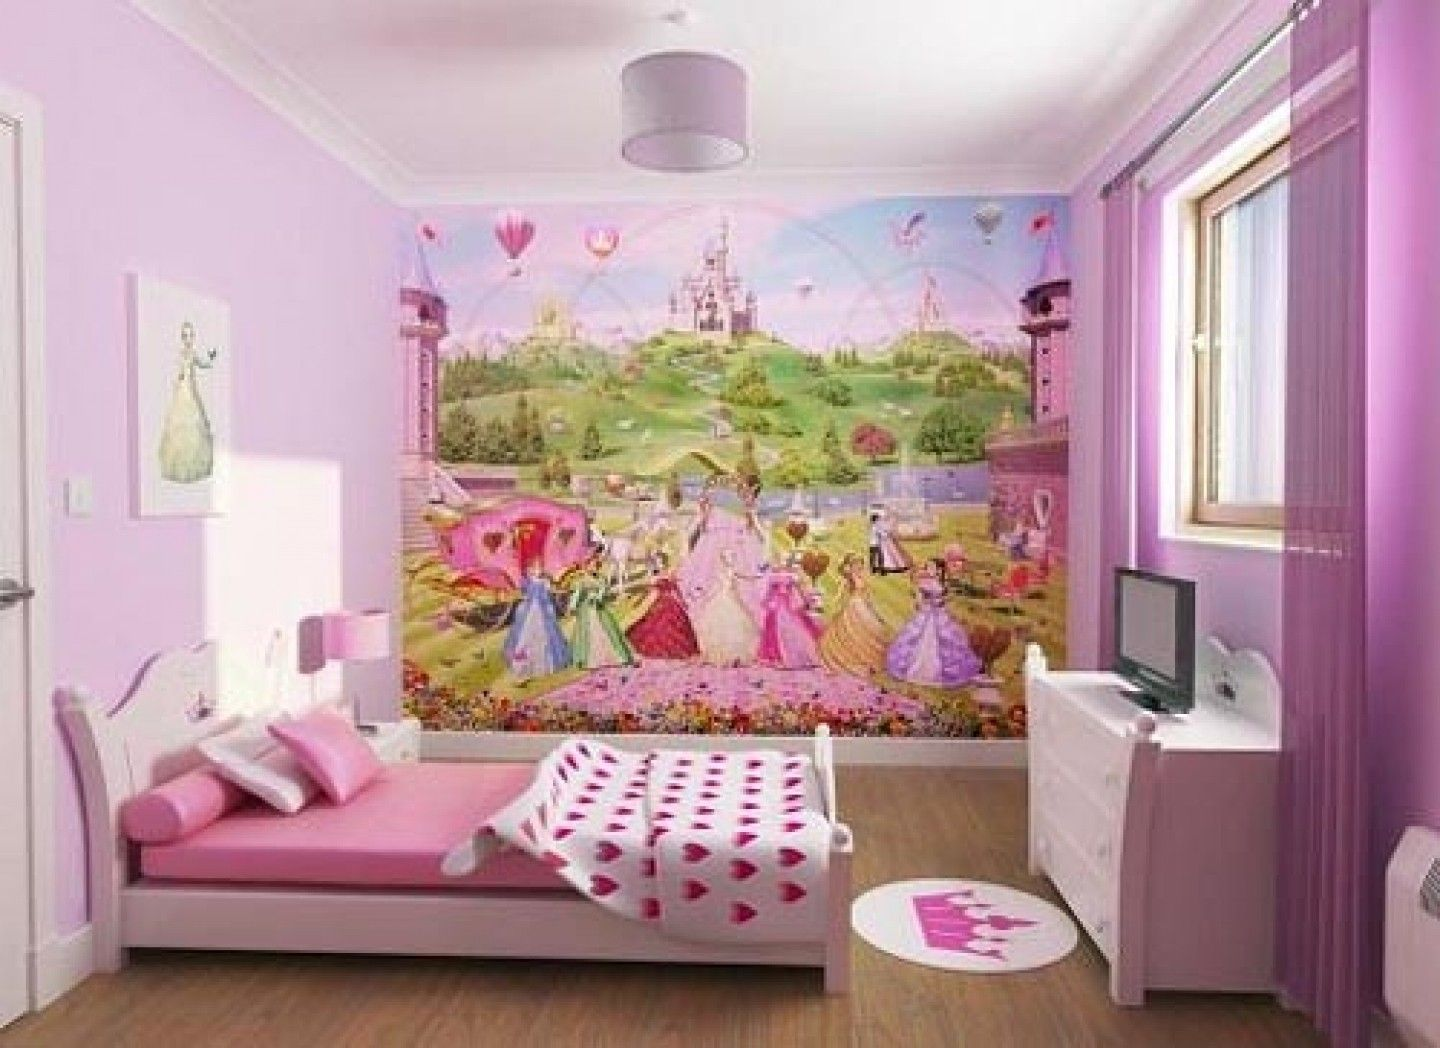 18 Best Images About Toddler Girls Bedroom On Pinterest Toddler Girl Bedrooms Toddler Rooms And Wall Colors